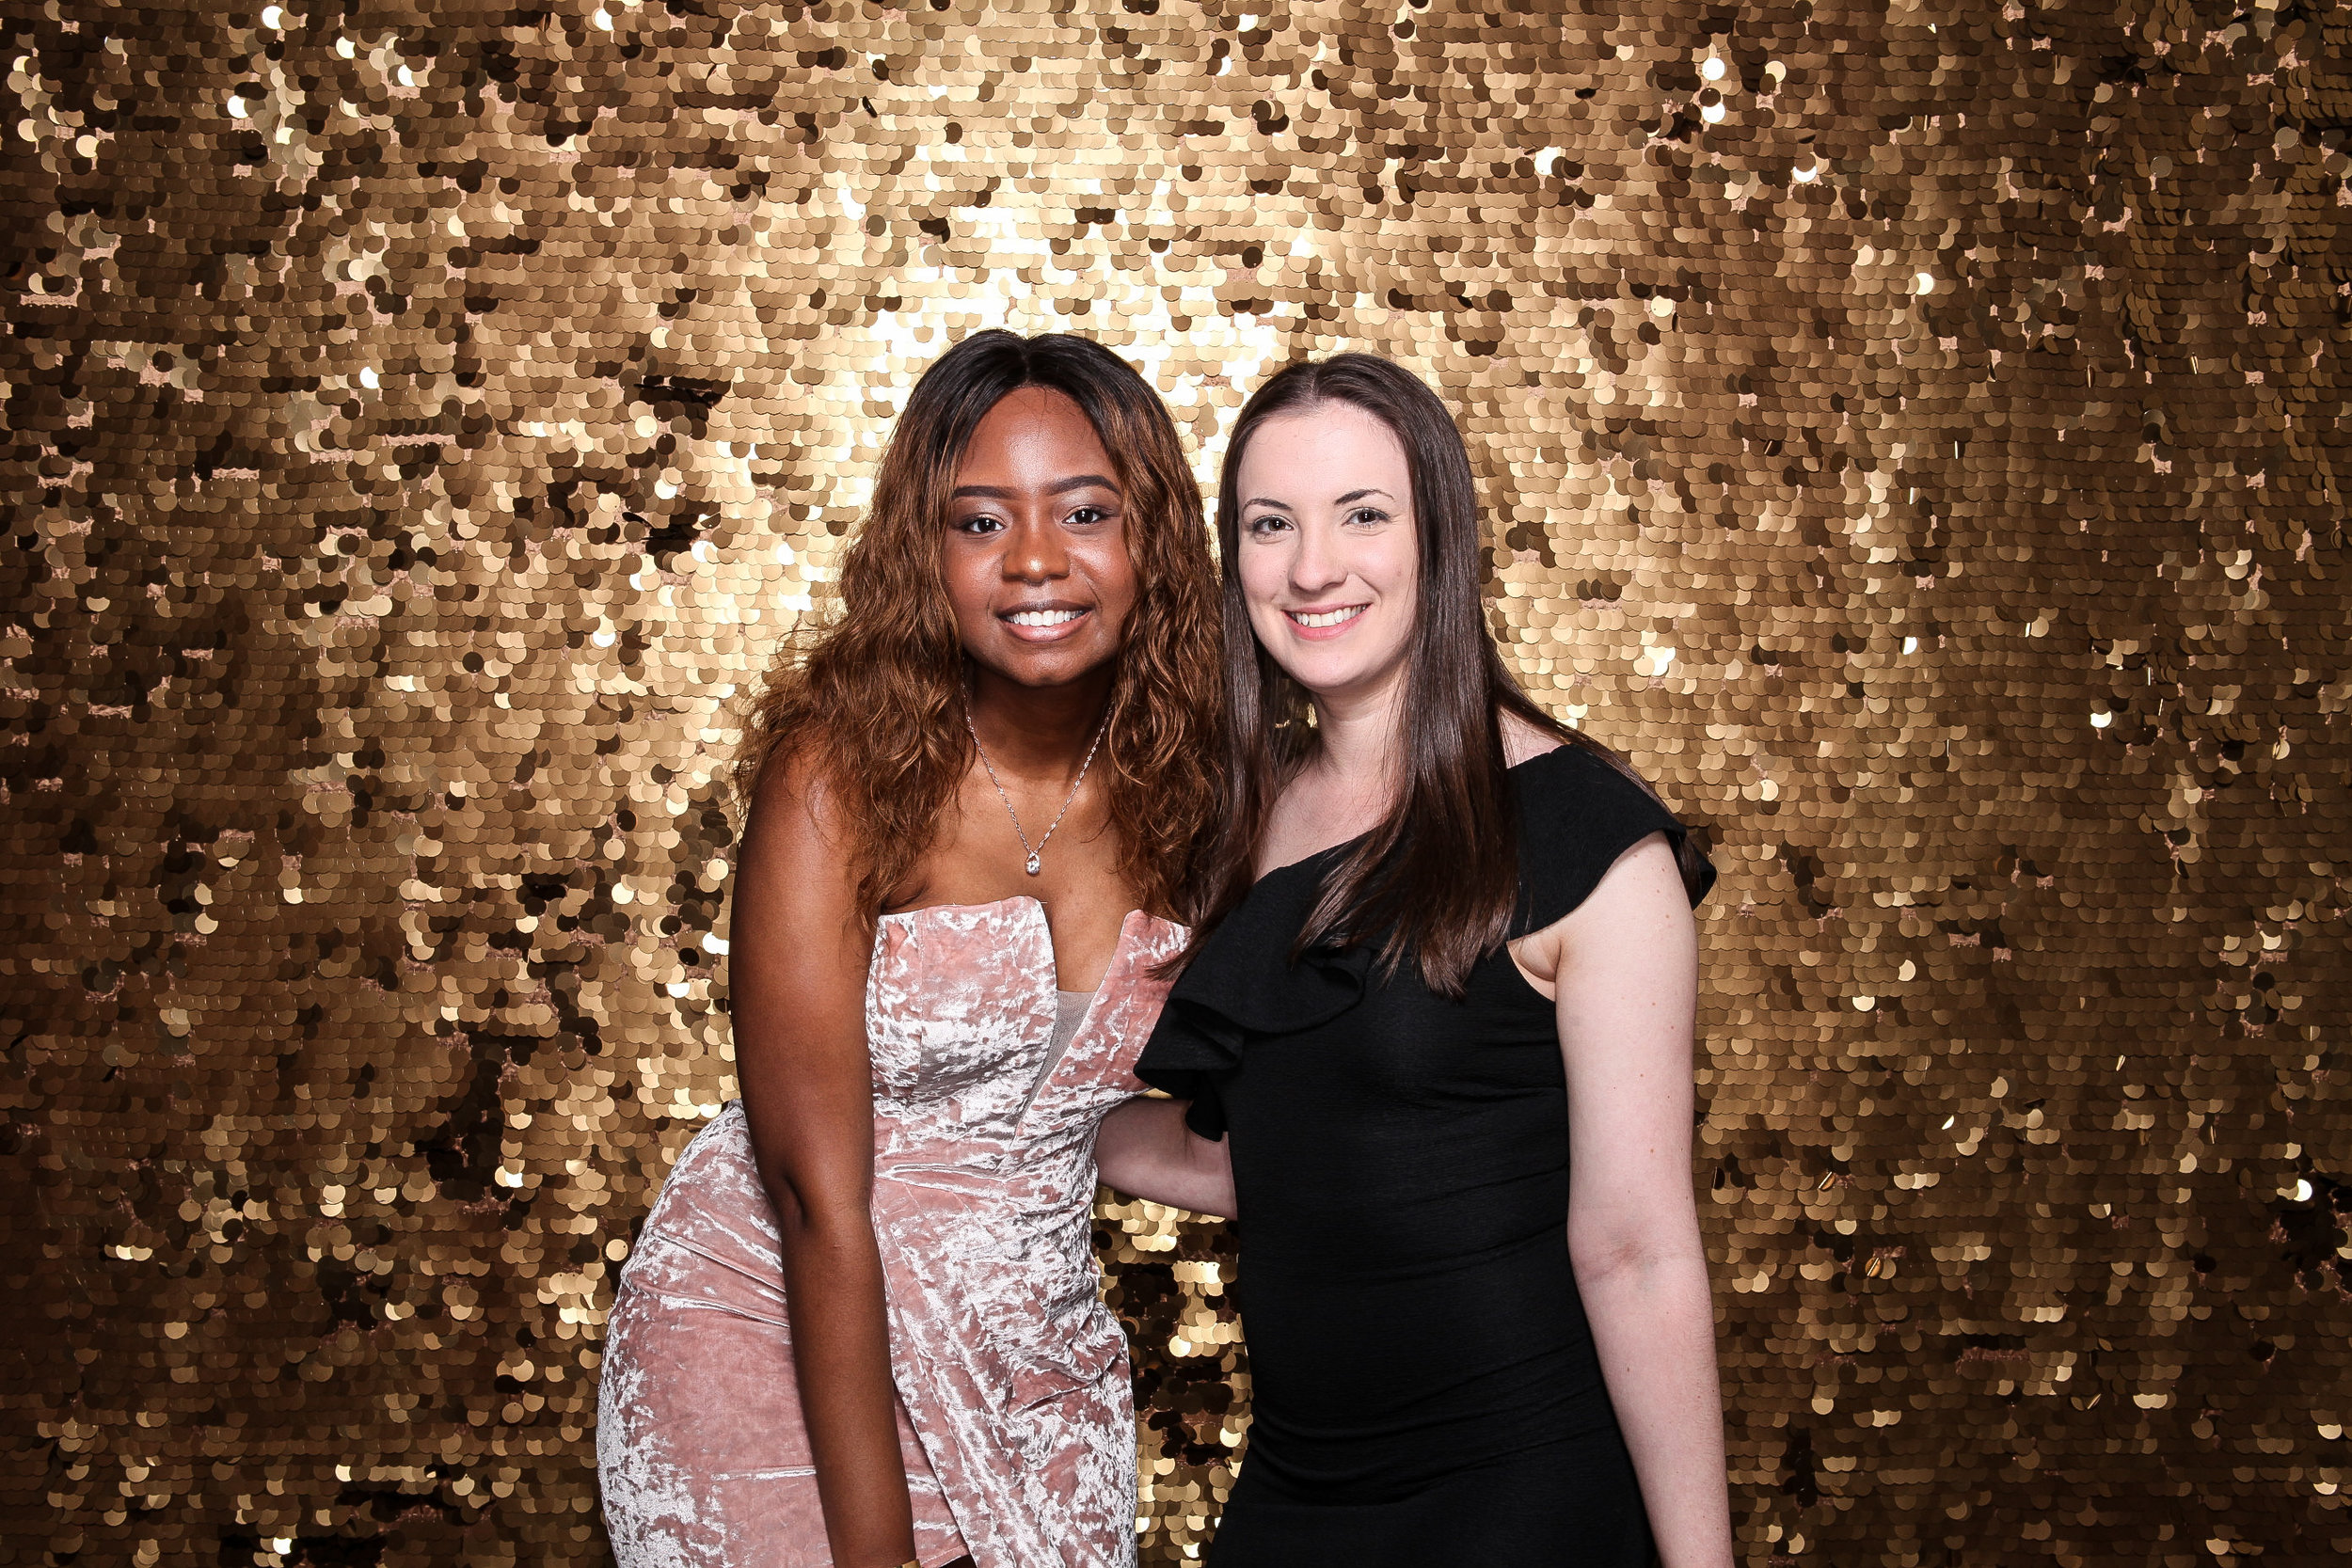 20190503_Adelphi_Senior_Formal-169.jpg